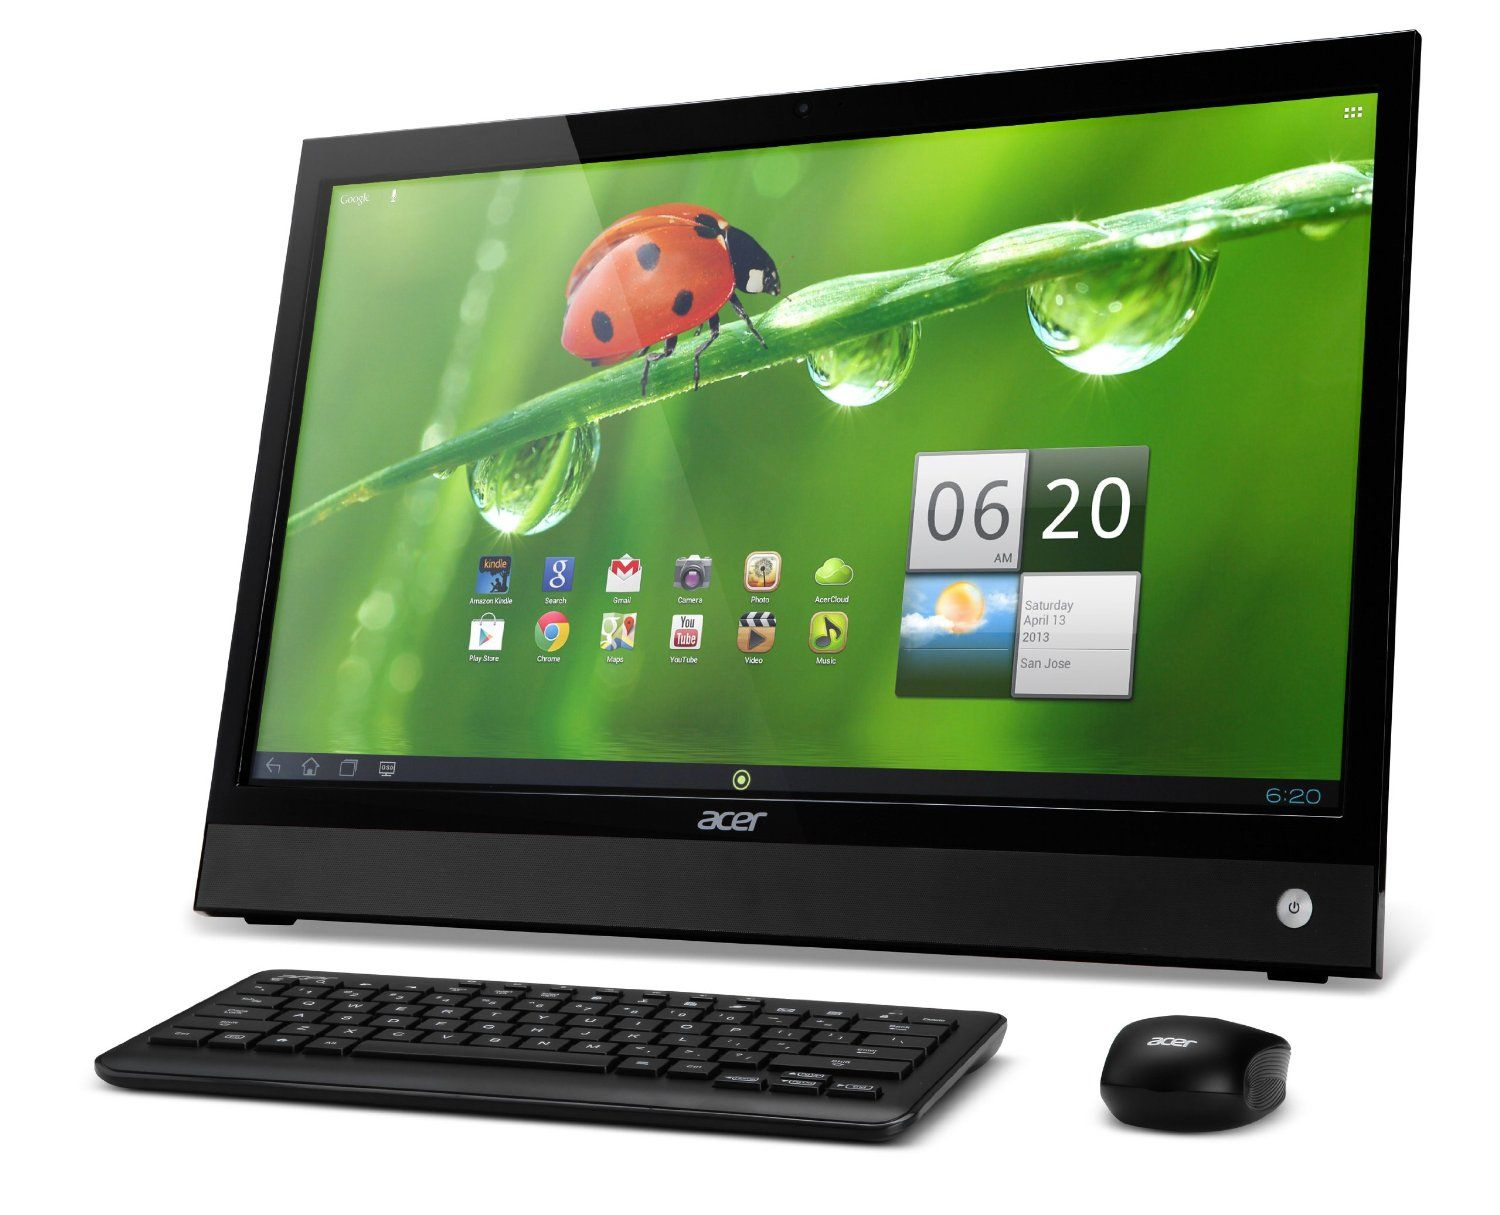 Dell inspiron 23 quot 5348 all in one desktop unboxing youtube - Amazon Com Acer Da220hql 21 5 Inch Android All In One Touchscreen